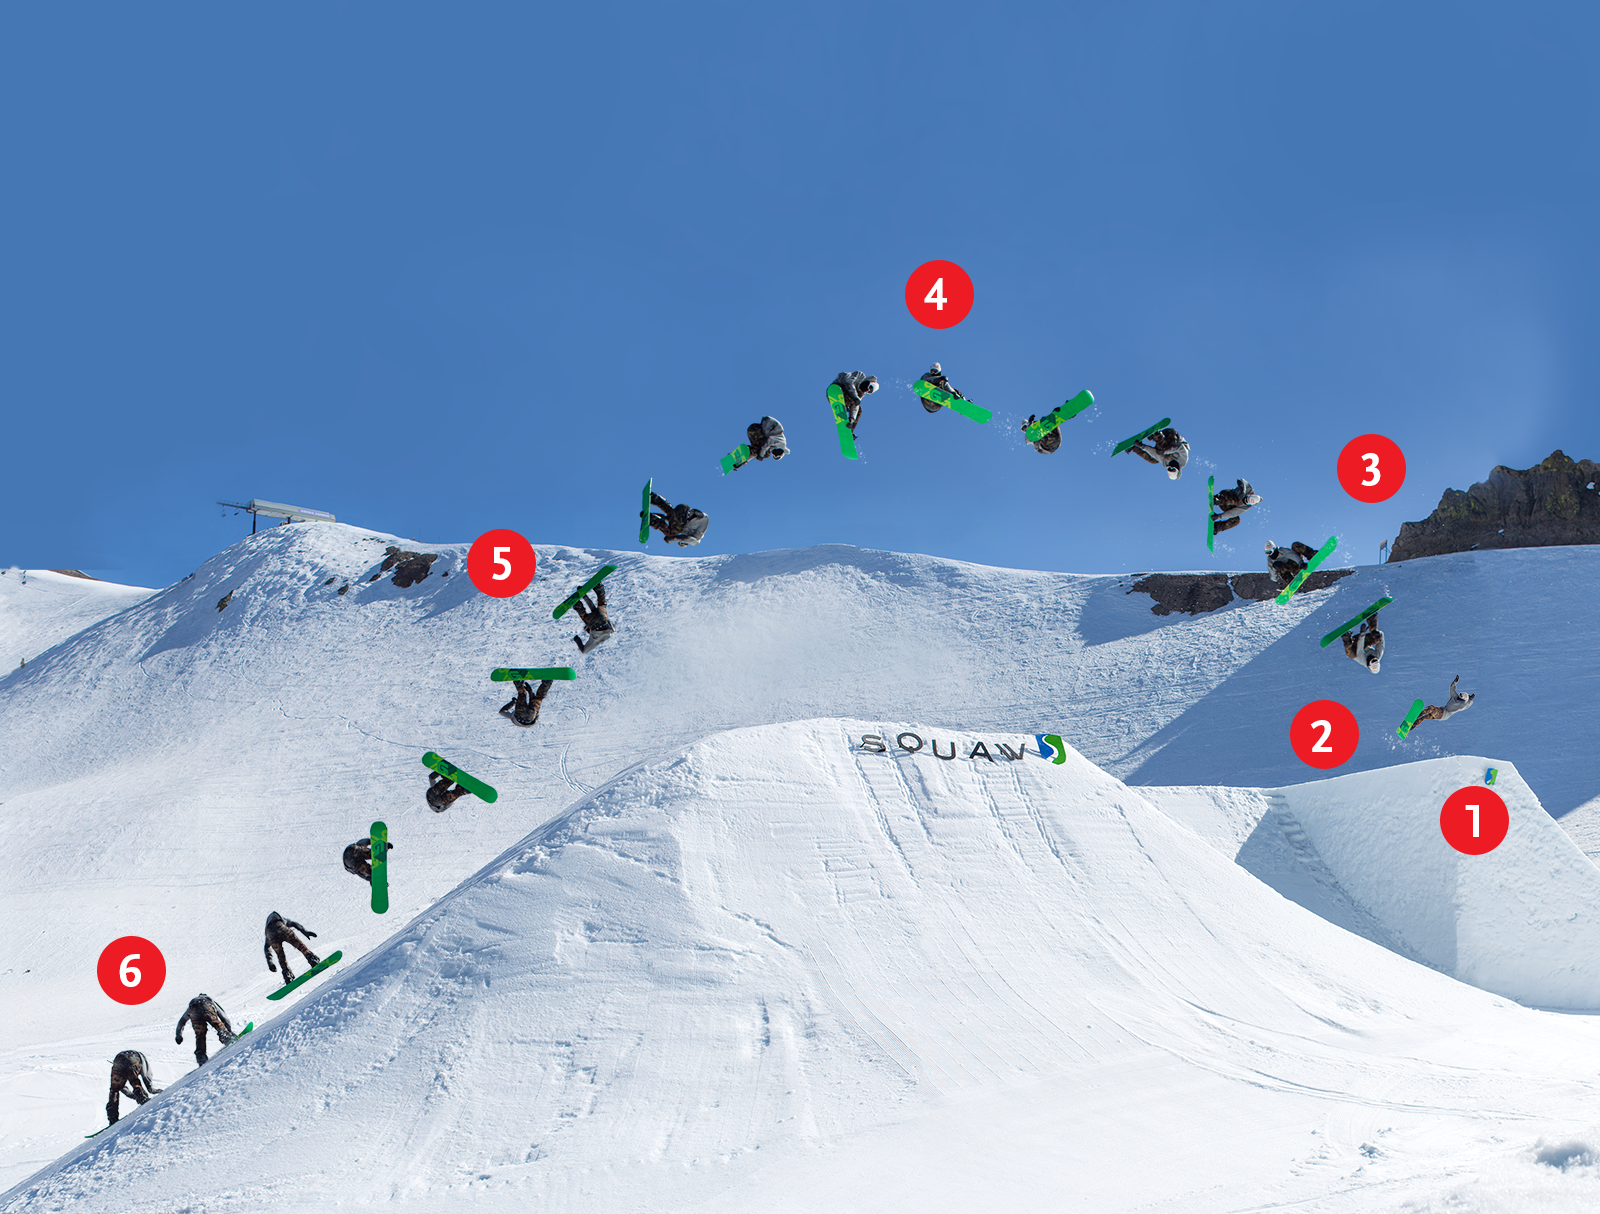 Infographic: The physics of slopestyle | Canadian Geographic